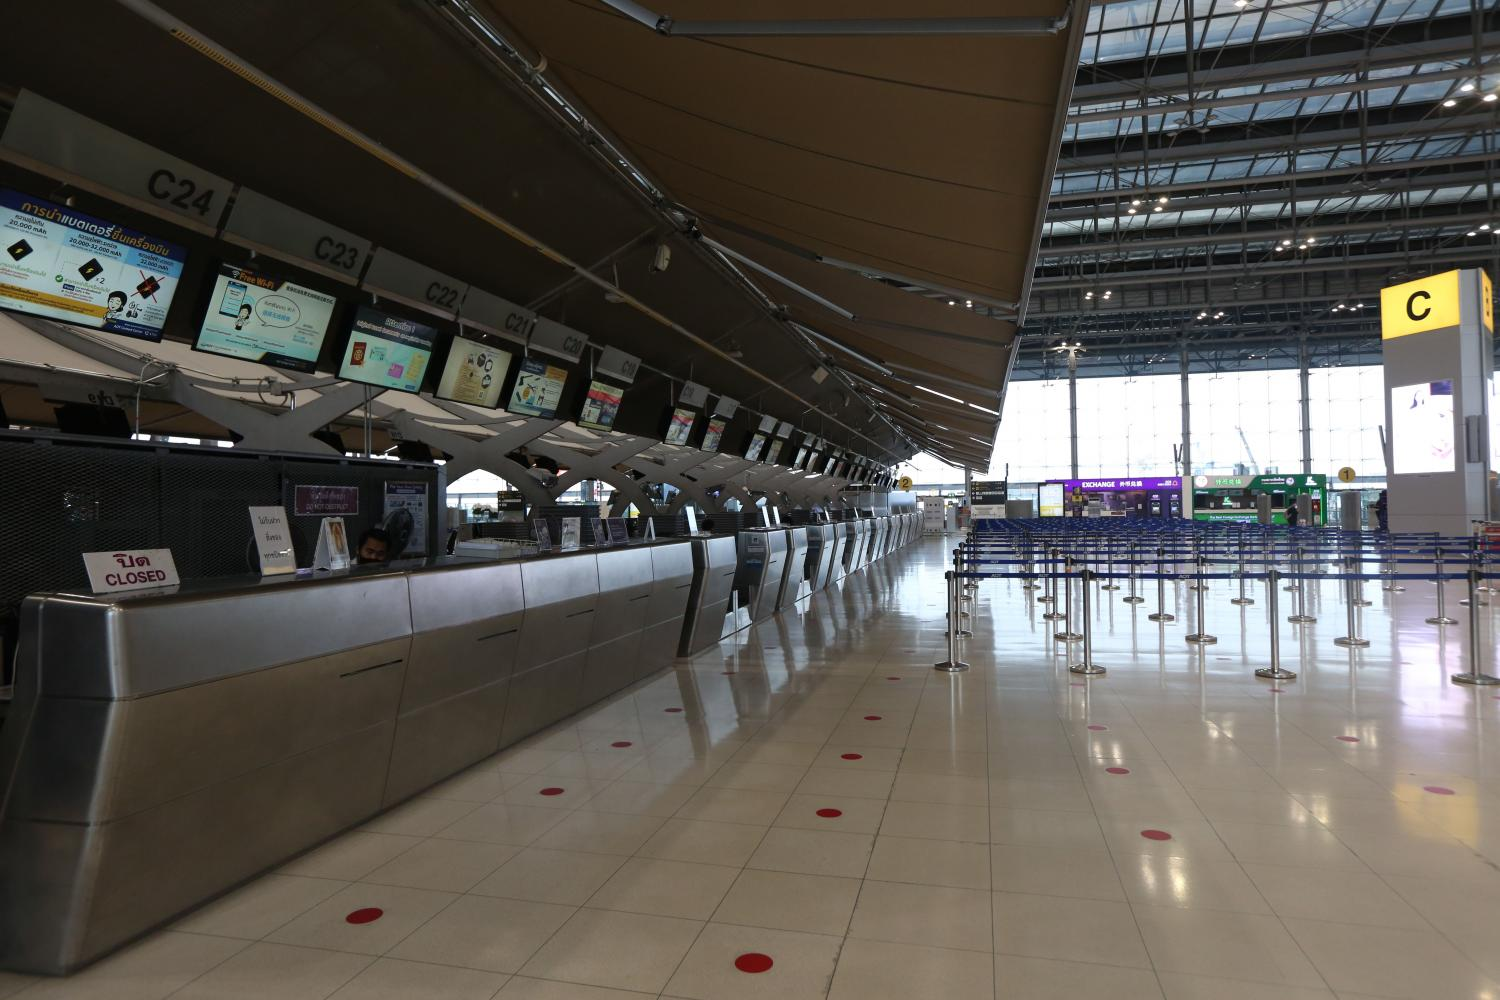 Suvarnabhumi airport is nearly empty amid the Covid-19 pandemic. Tour business operators have faced difficulties for nearly a year due to the international travel restrictions. (Photo by Varuth Hirunyatheb)